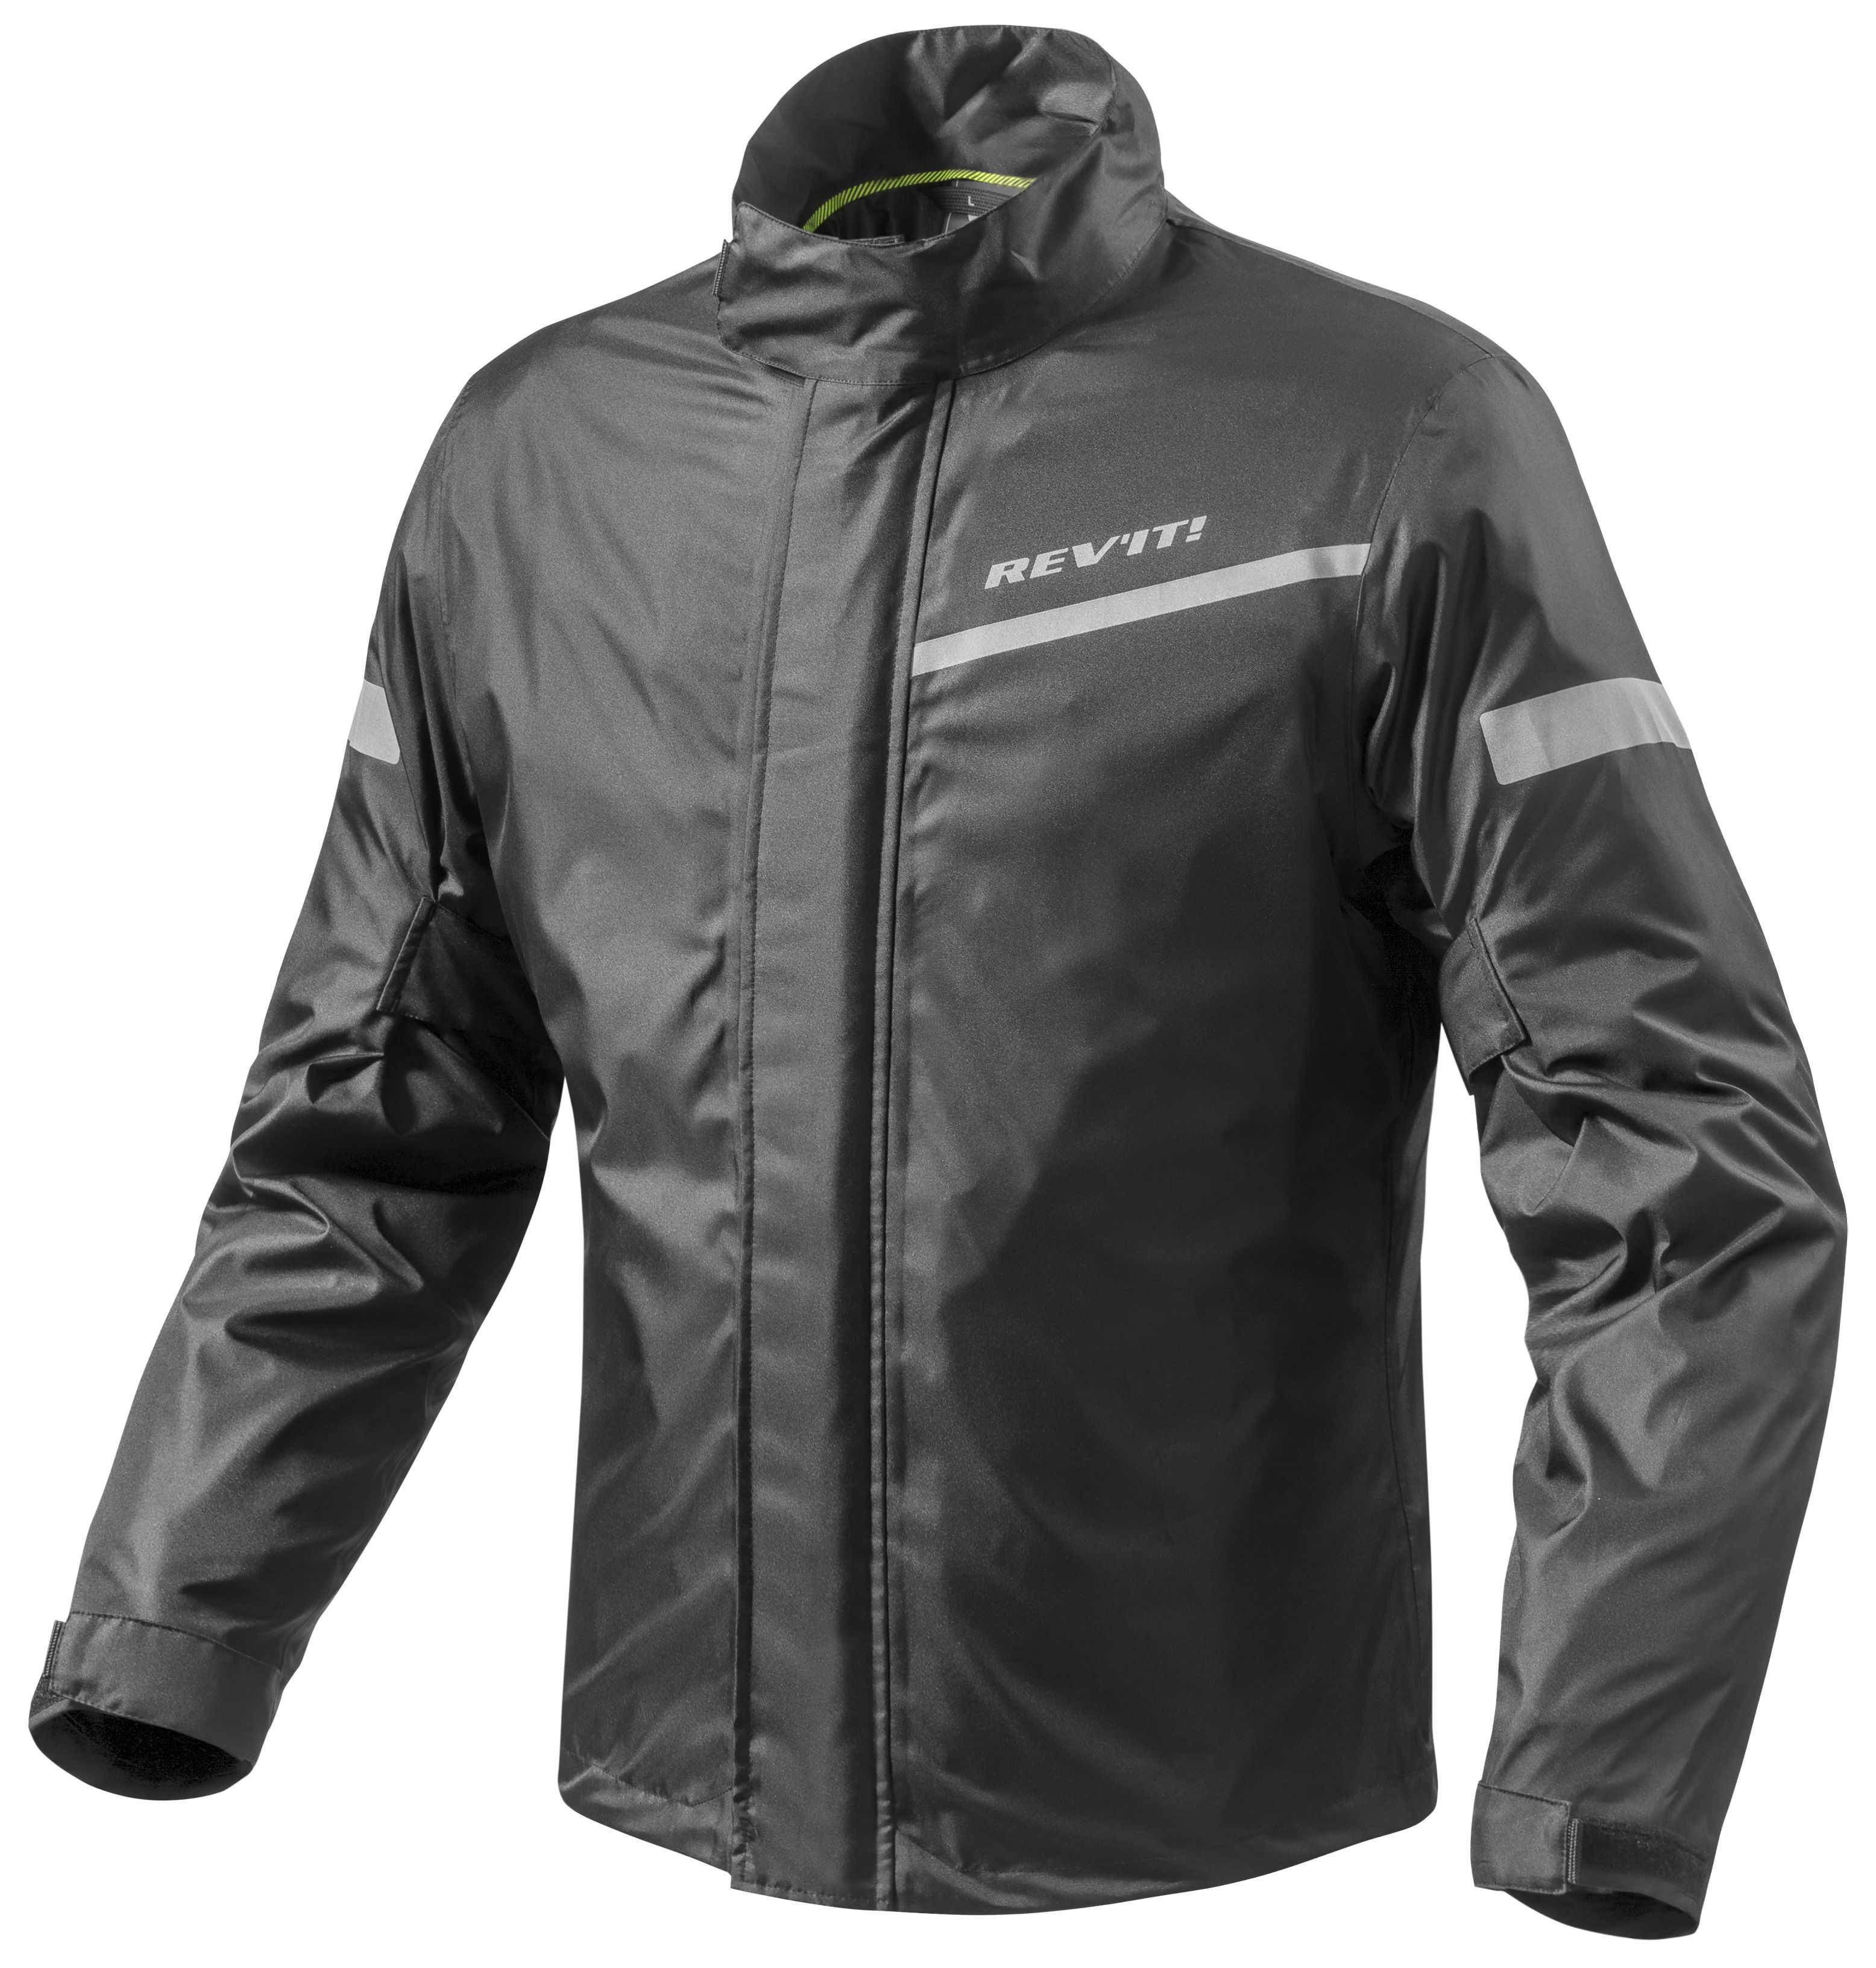 REV'IT! Cyclone 2 H2O Rain Jacket - RevZilla